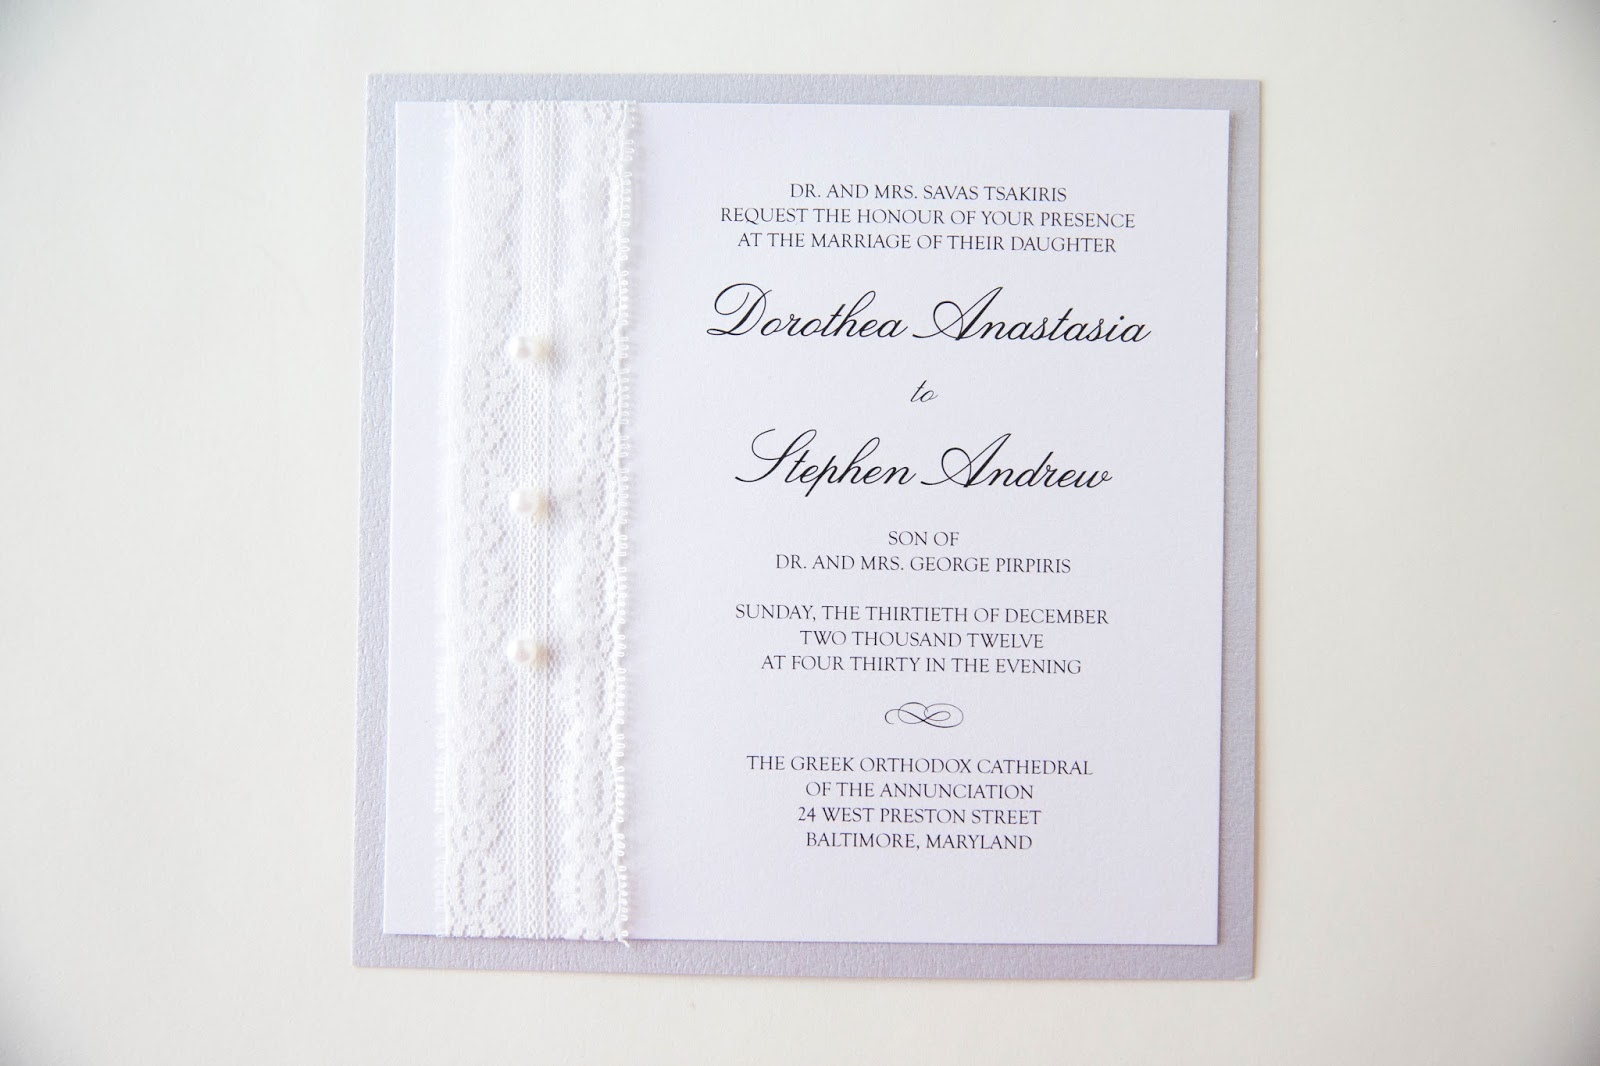 Wedding Invitations Lace And Pearl: Kindly R.S.V.P. Designs' Blog: Lace And Pearl Invitation